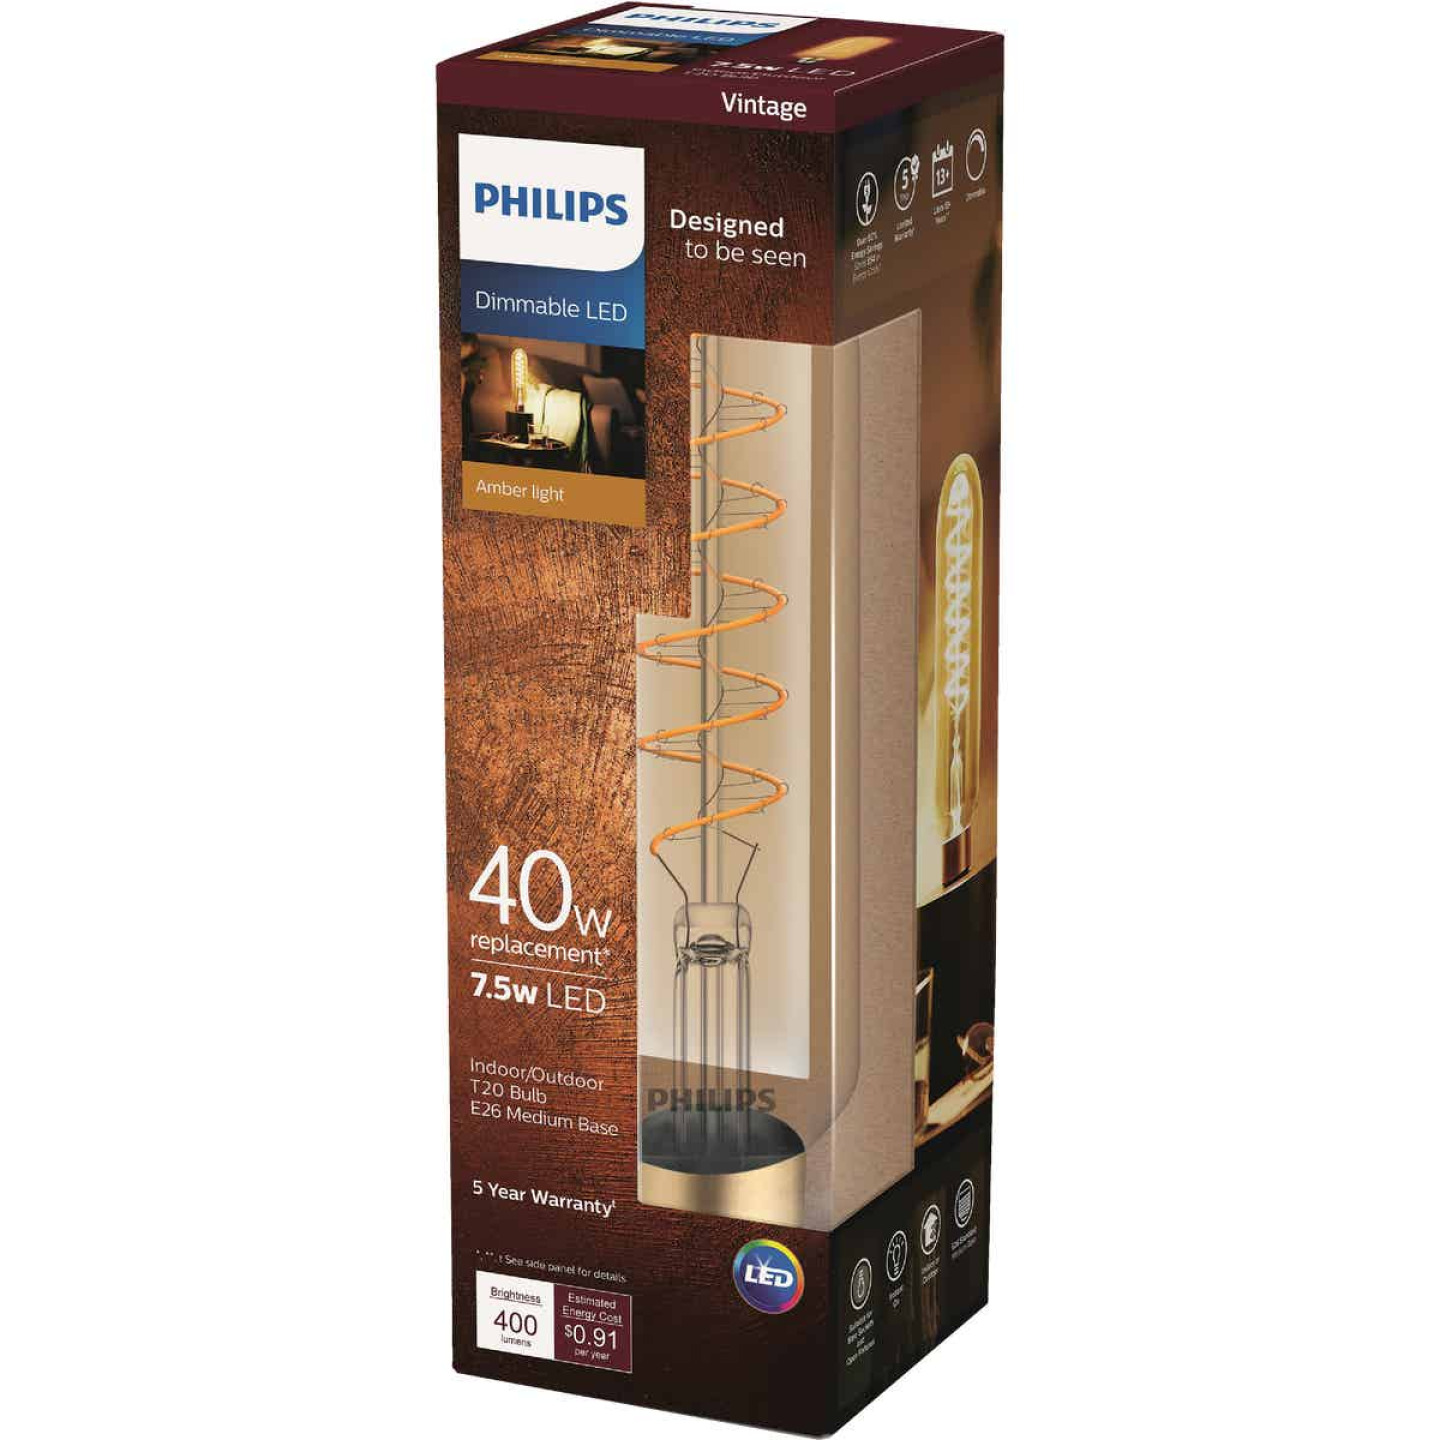 Philips Vintage Edison 40W Equivalent Amber T20 Medium LED Decorative Light Bulb Image 1